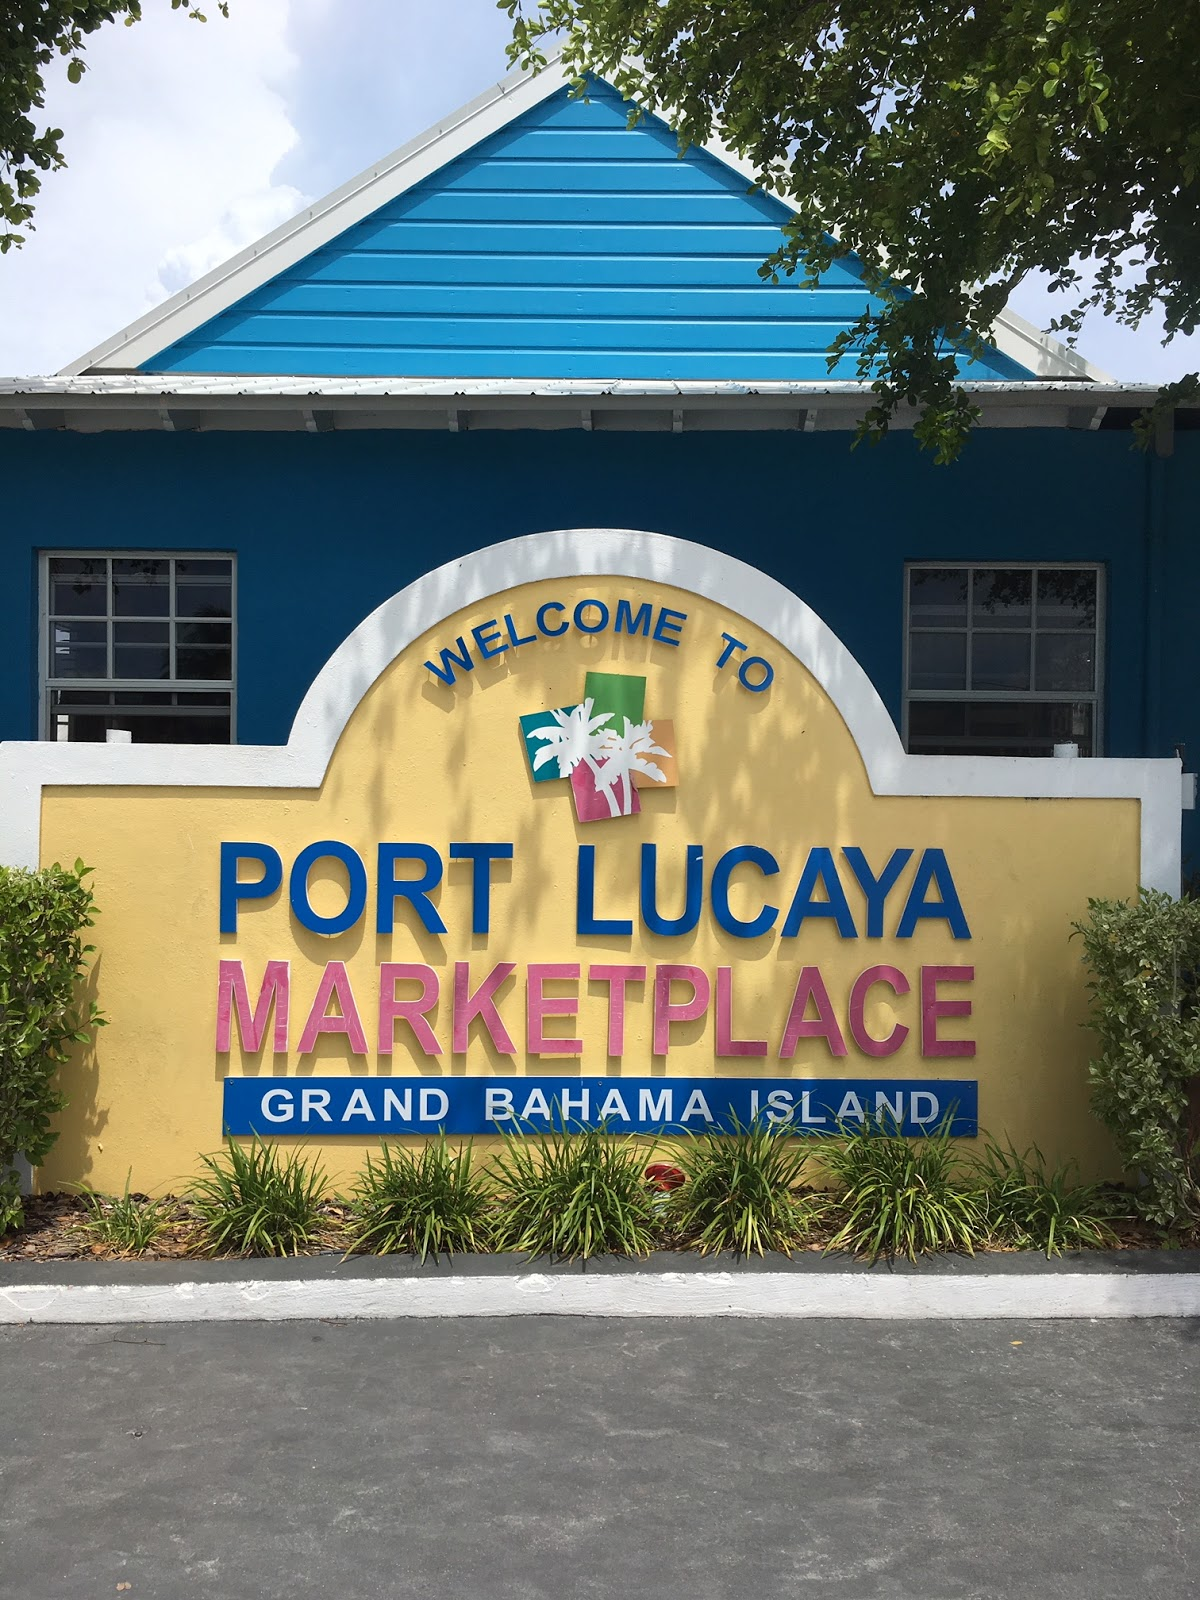 port lucaya marketplace grand bahama